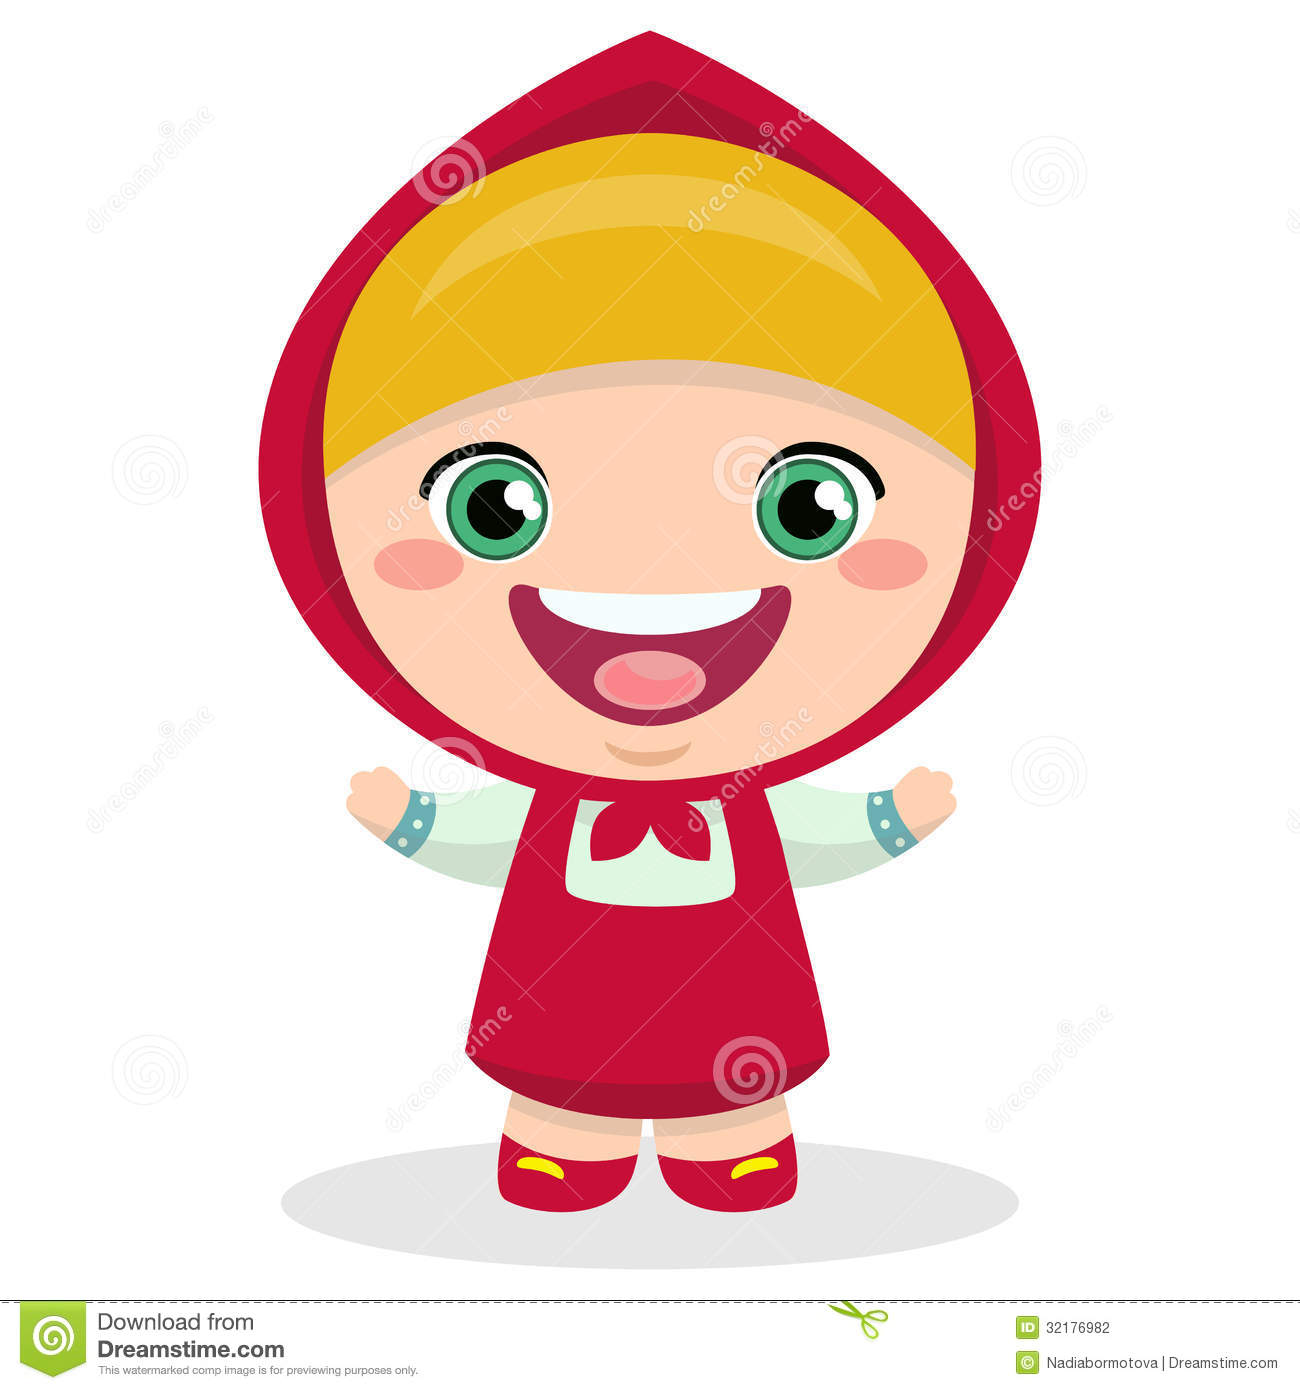 Funny cartoon Russian girl stock vector. Image of colorful ...